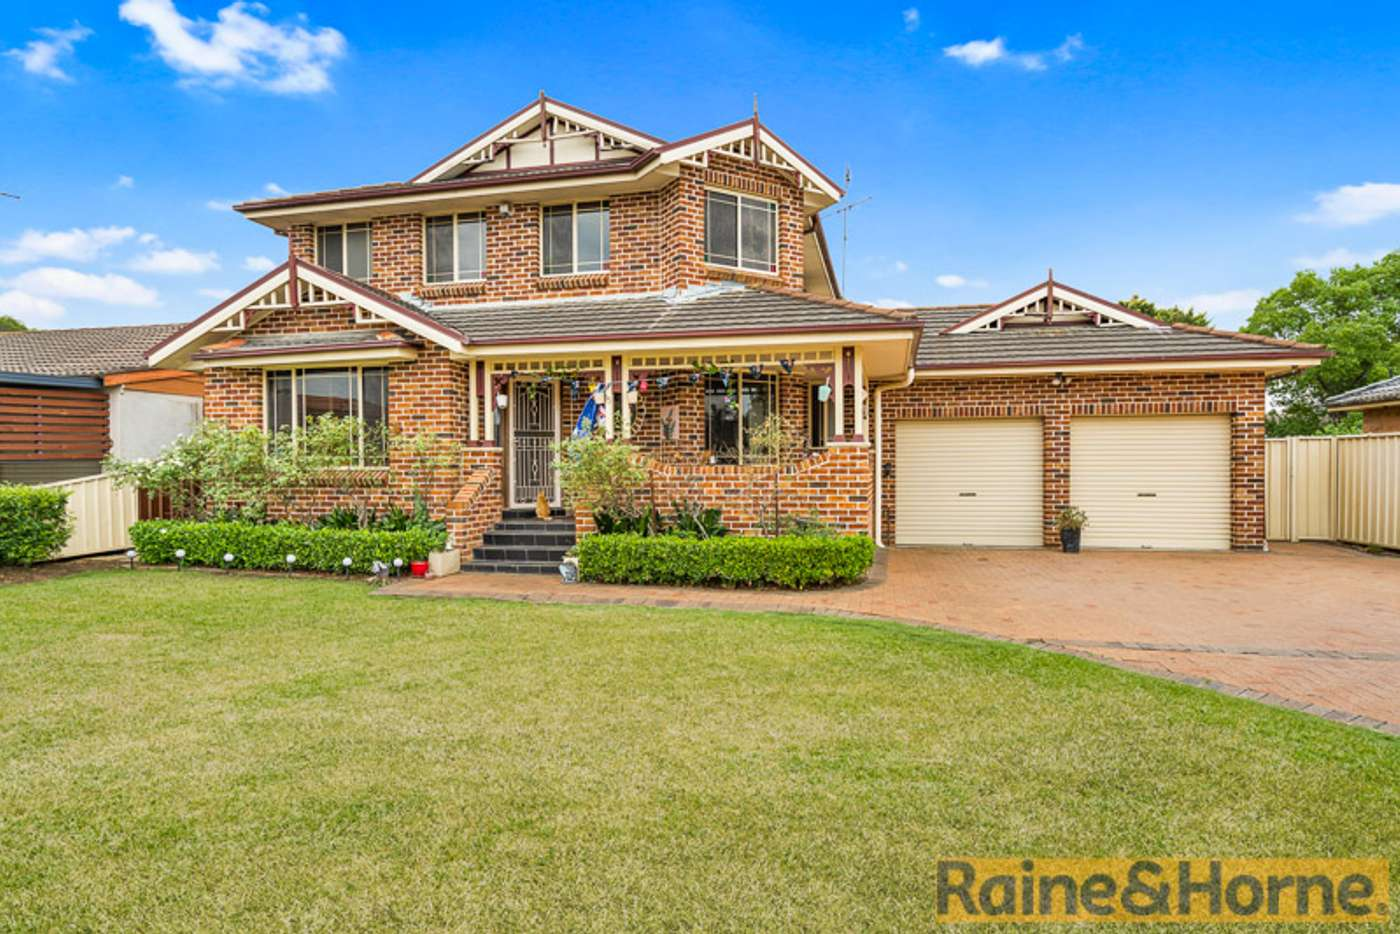 Main view of Homely house listing, 15 Balmain Road, Mcgraths Hill NSW 2756